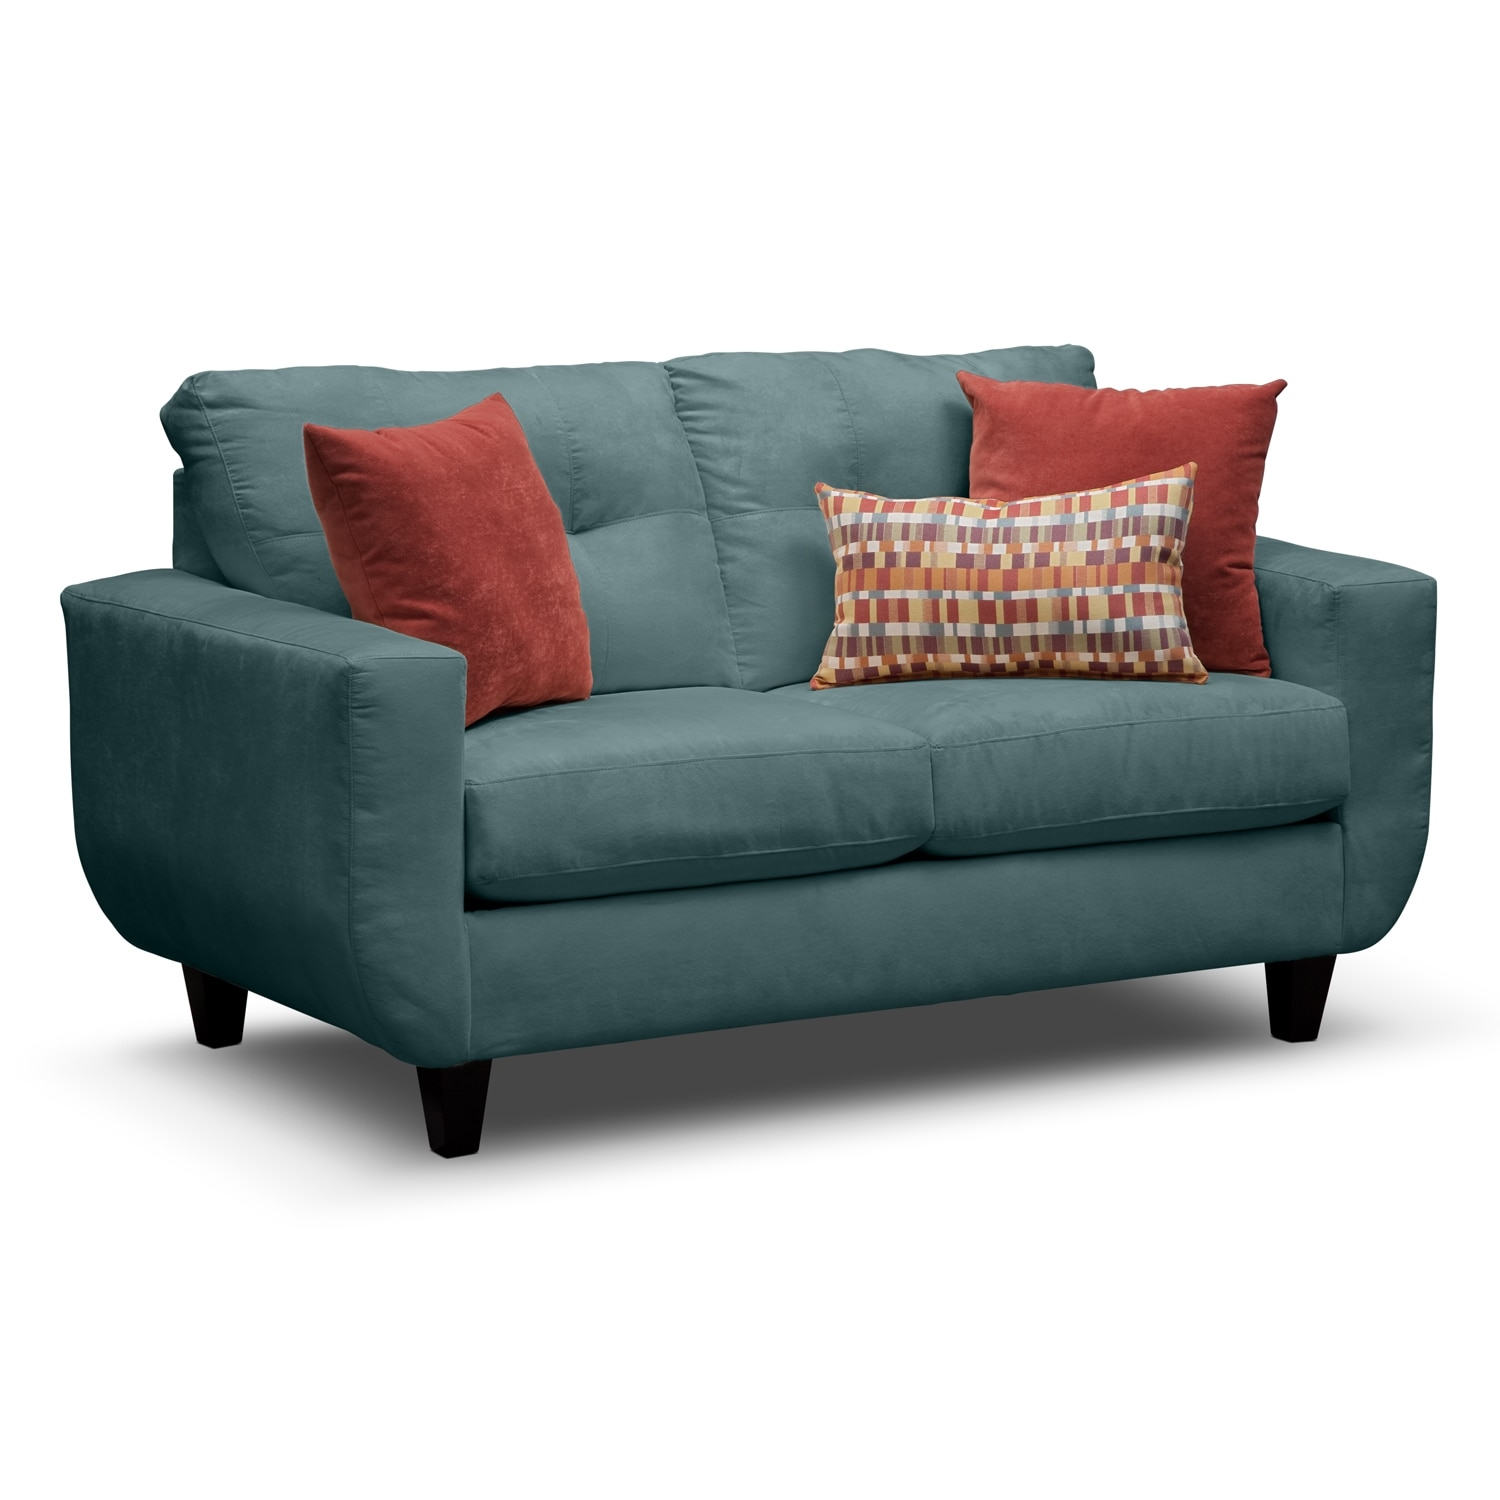 West Village Loveseat - Blue